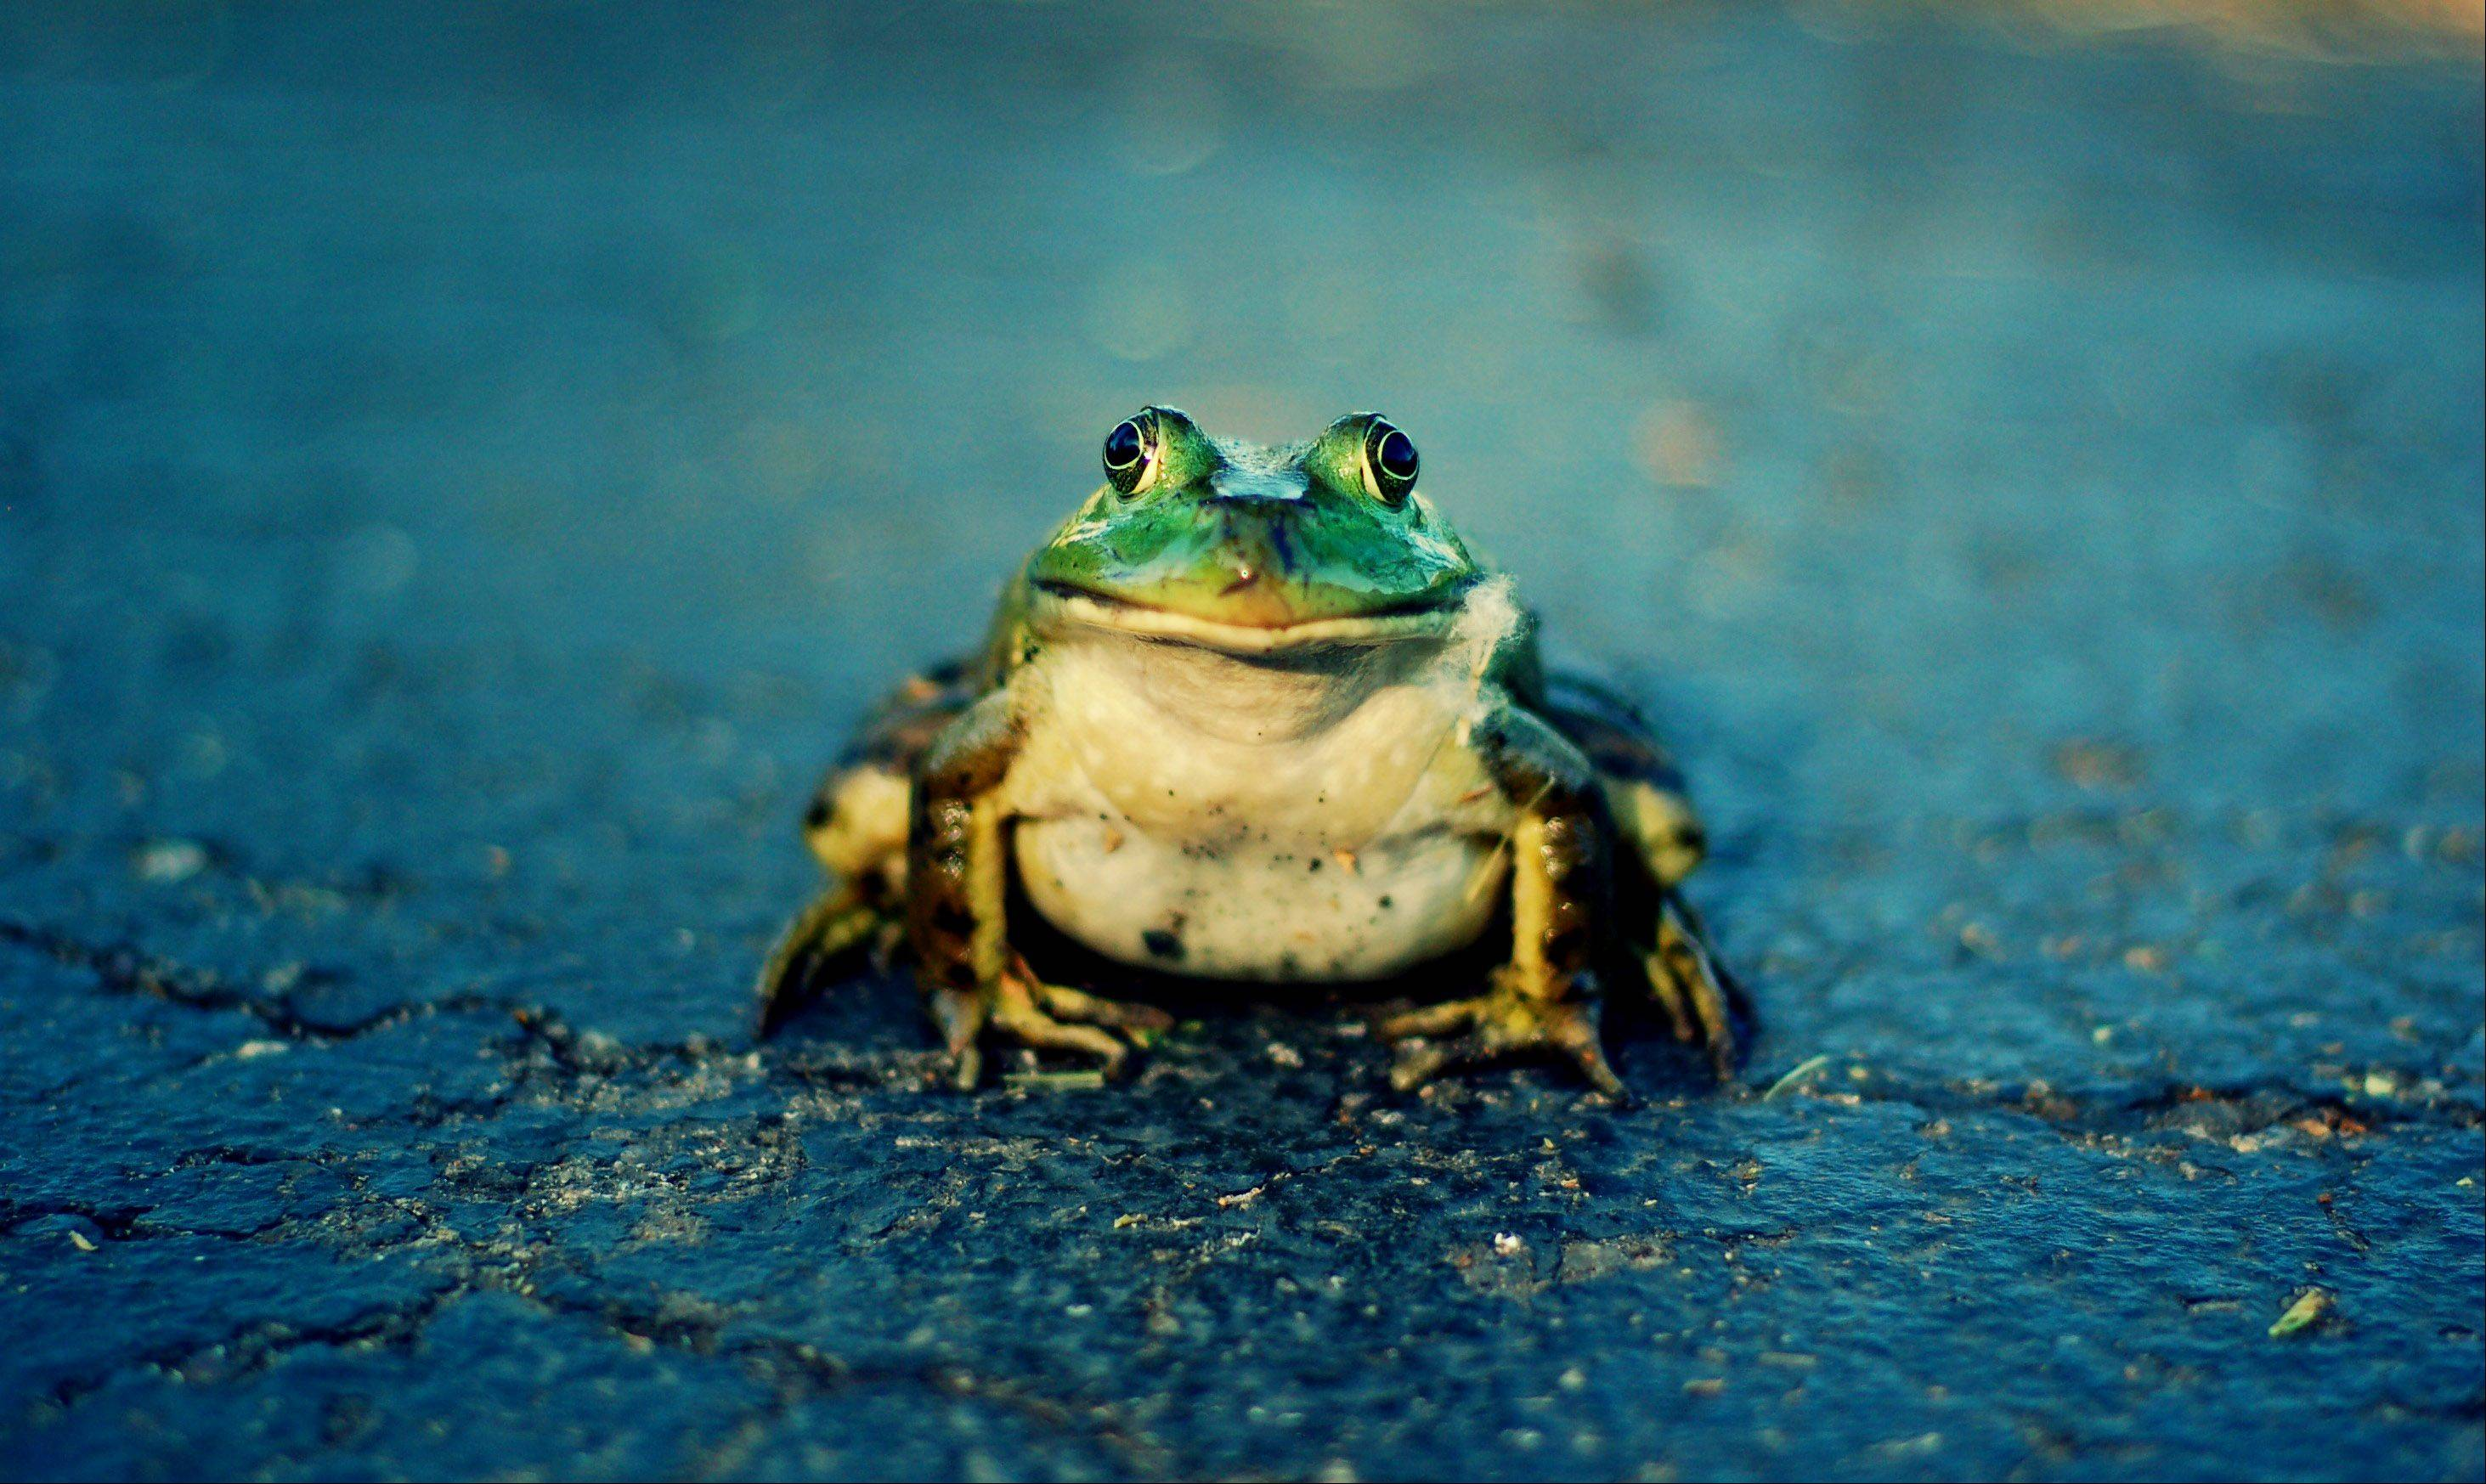 I was riding my bike one day last month next to a lake in Carol Stream when I found this guy sitting smack dab in the middle of the bike path. I thought he'd make a great photo, so I got down on my hands and knees to take a few shots. You could say I got a frog's-eye perspective! He didn't move the whole time, and I'm very proud of how the picture turned out.